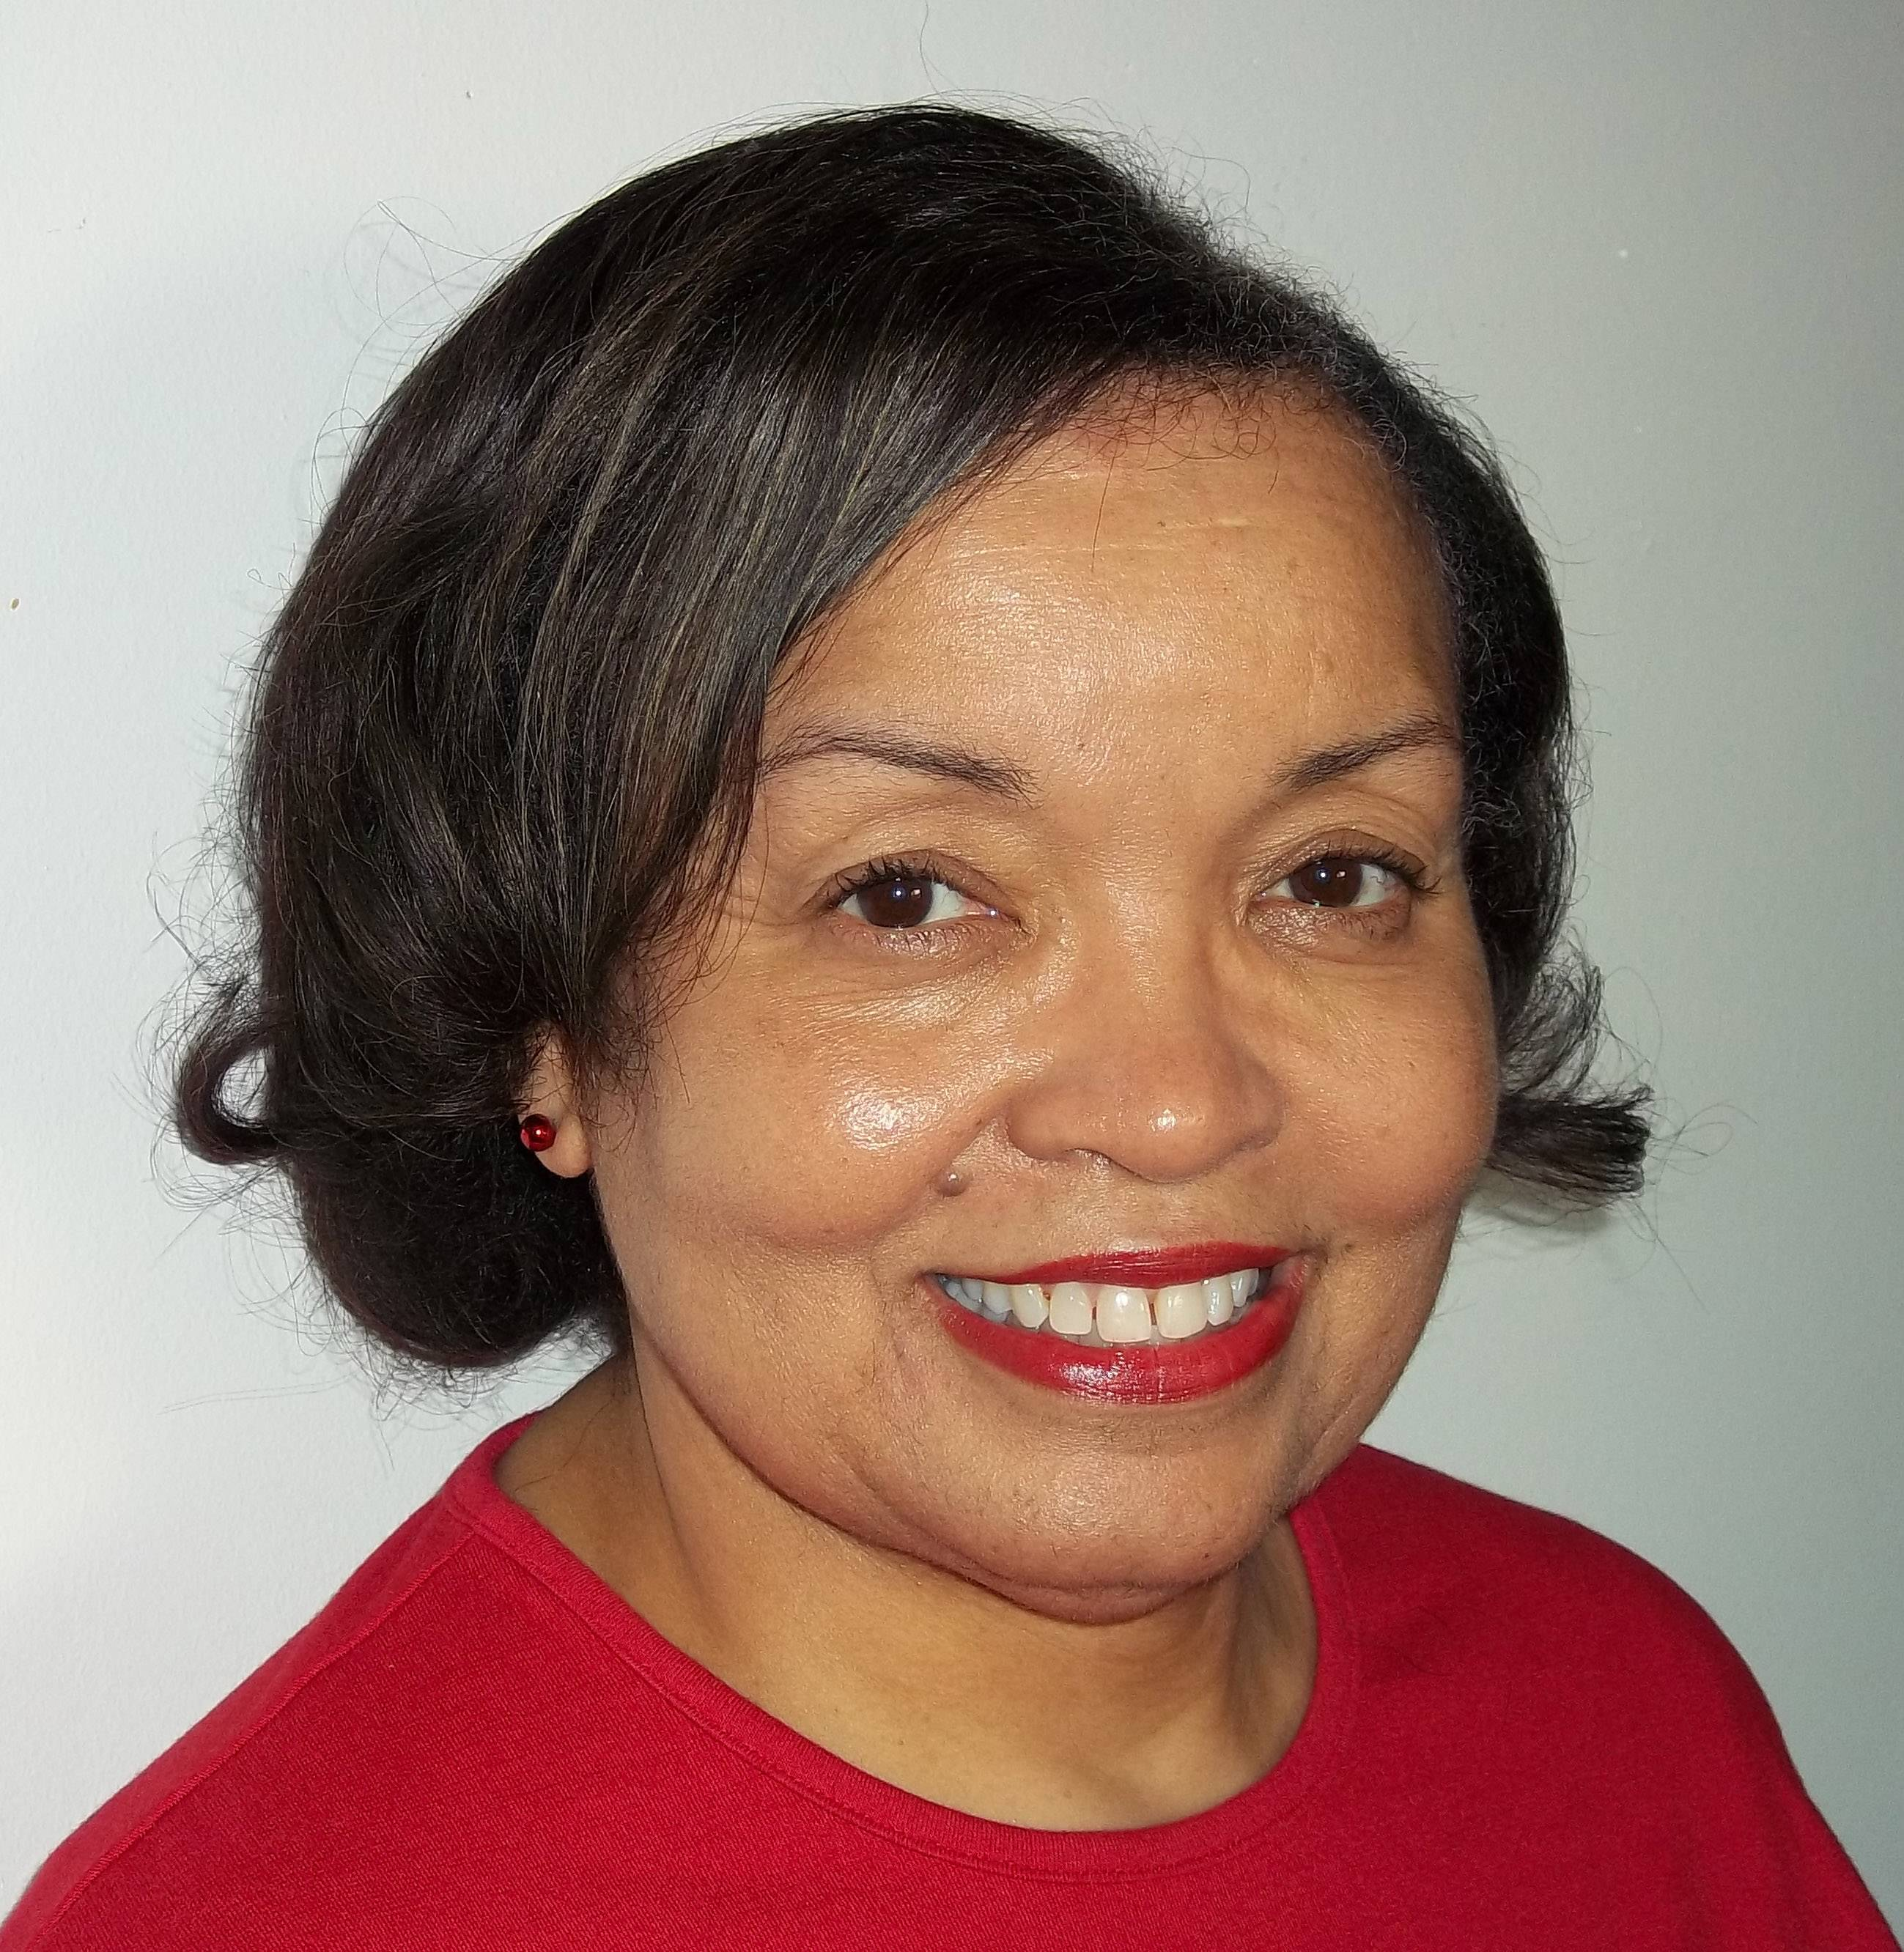 Bonita Gilliam, running for Carol Stream Library Board (4-year Terms)